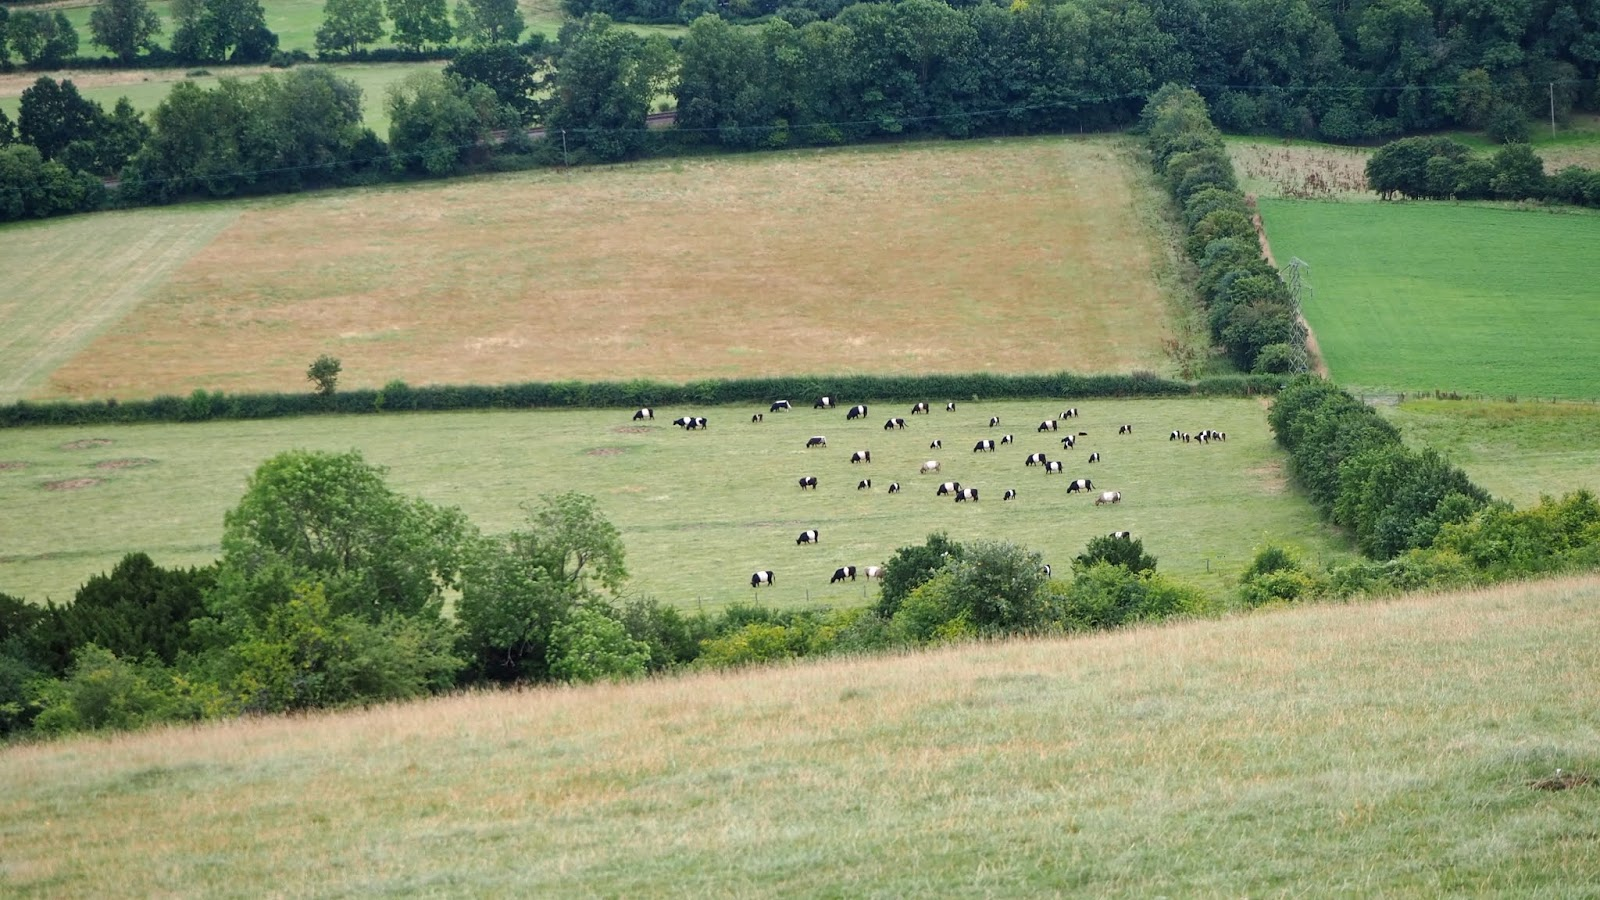 Cows in Dorking